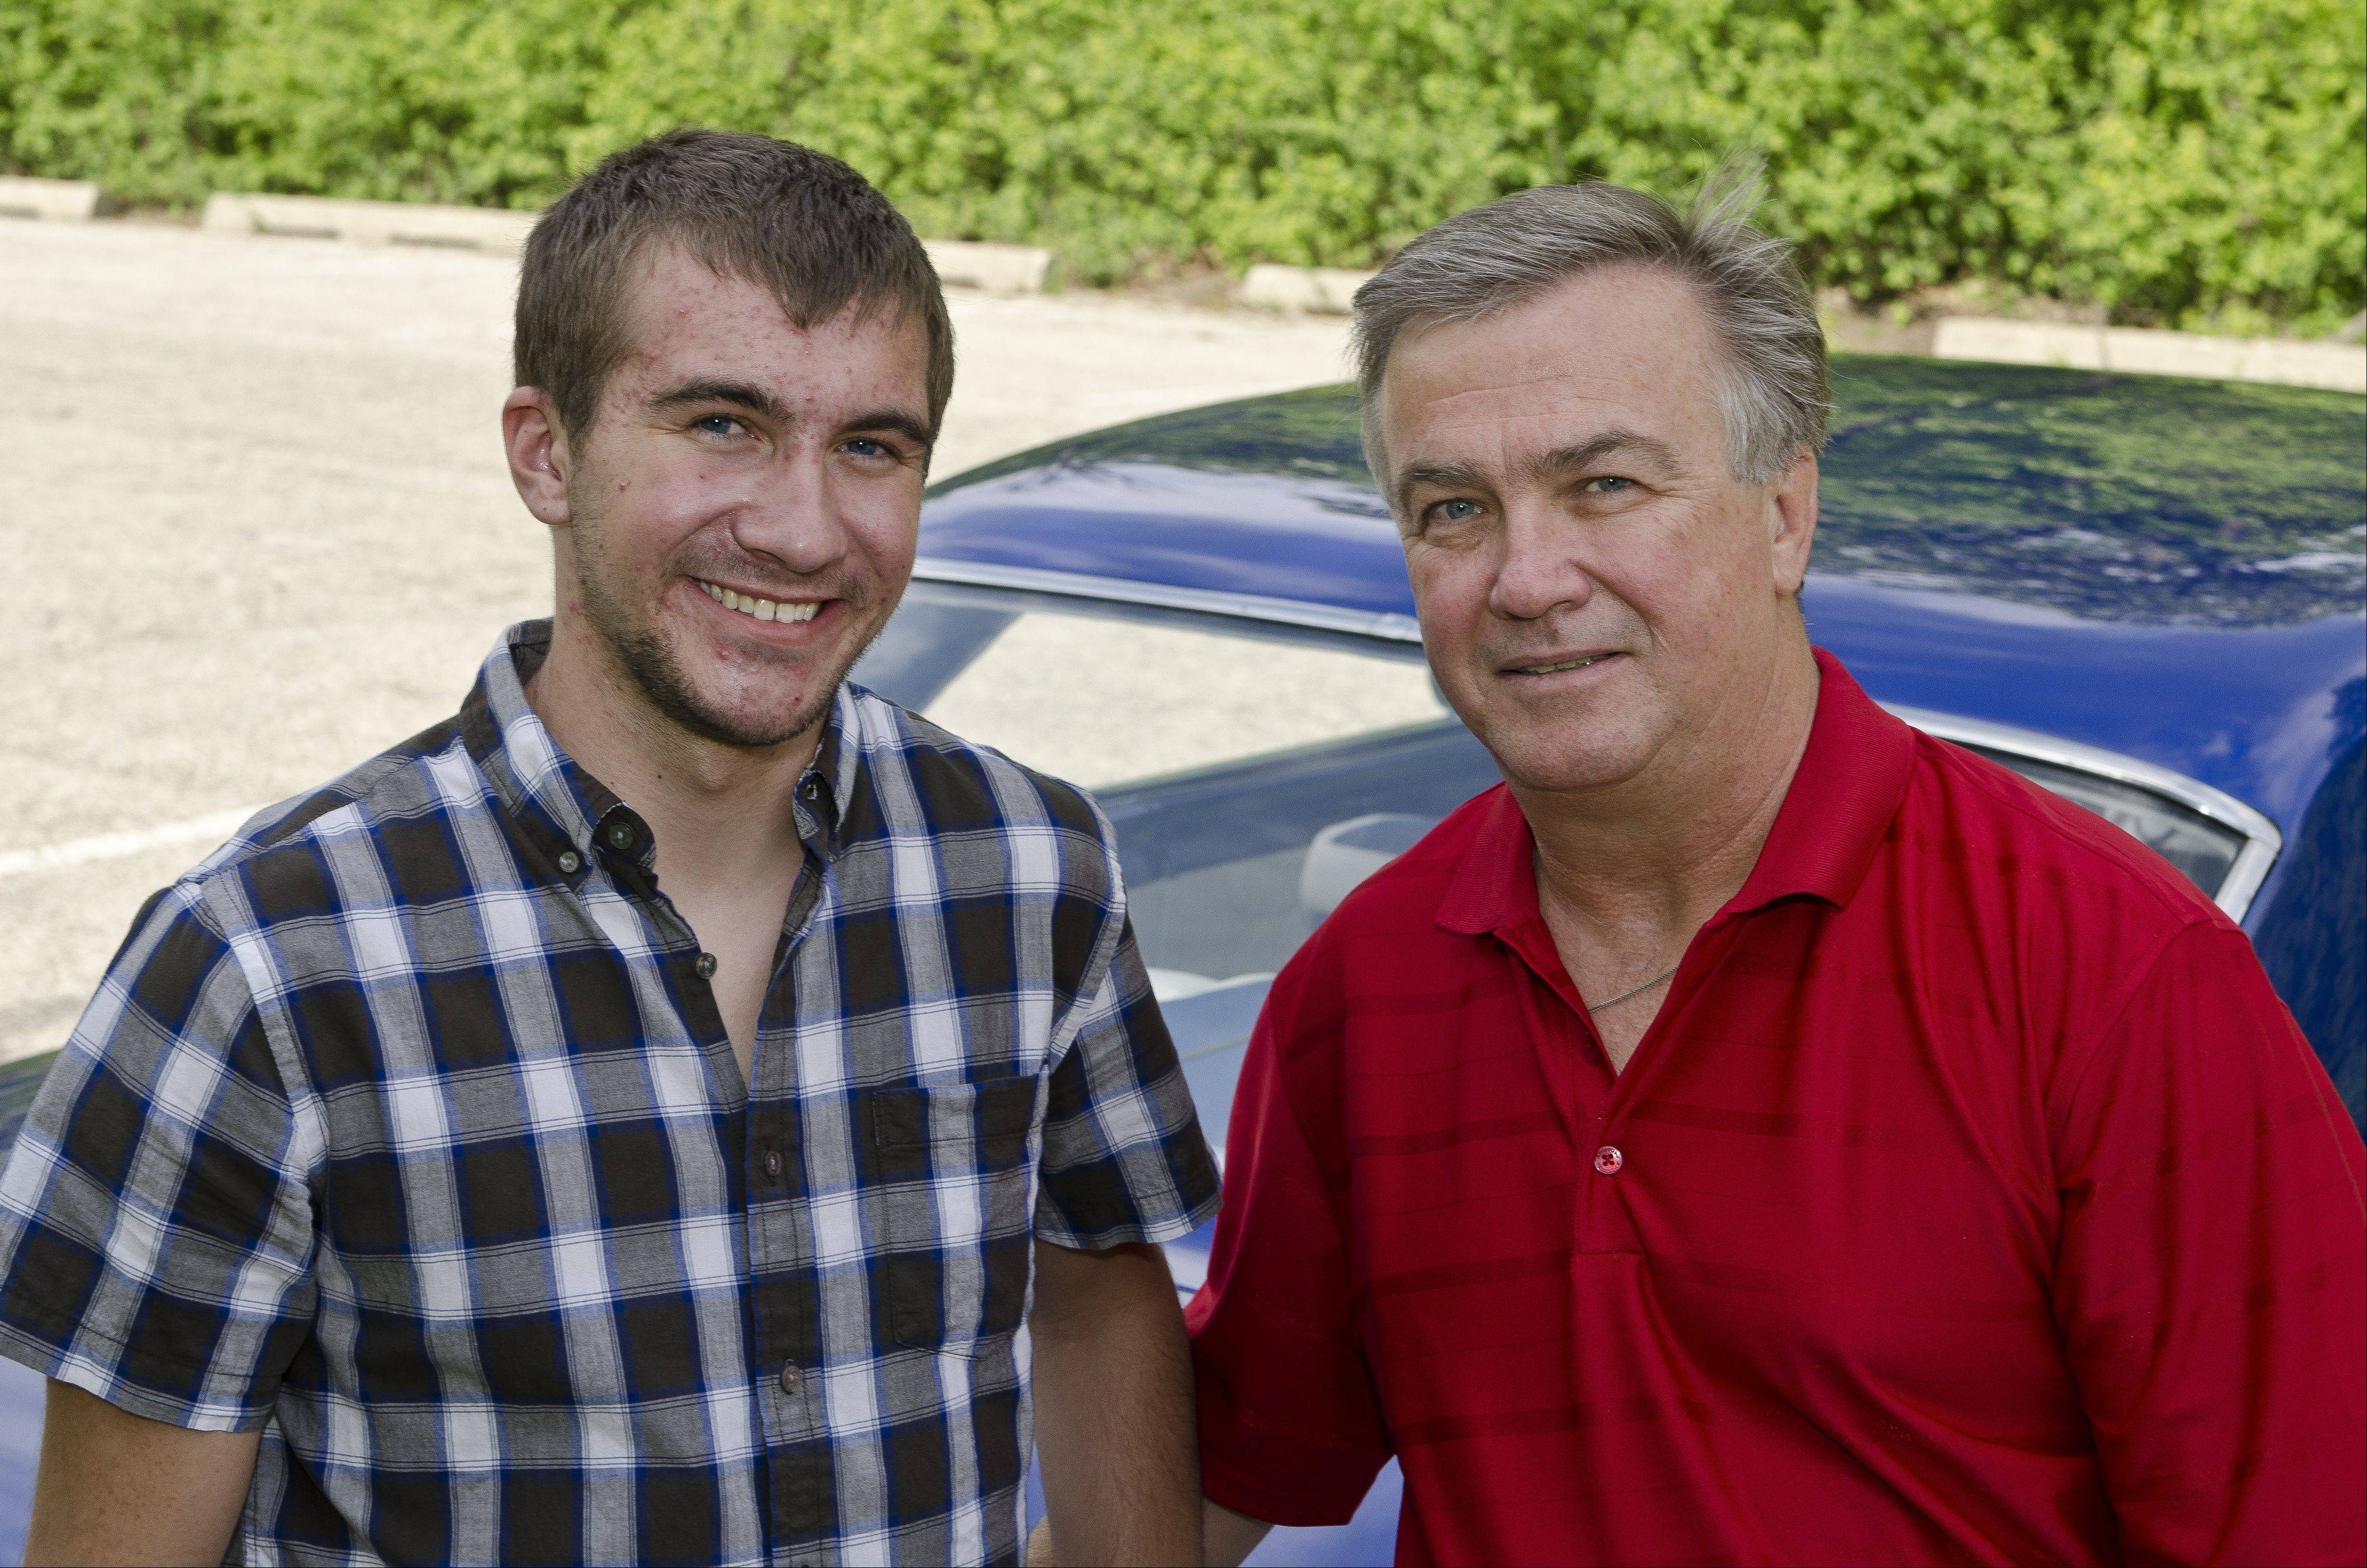 Tyler and Gerry Dziedzina of Palatine prefer the longer lines of the 1966 Chevrolet Nova compared to later models.